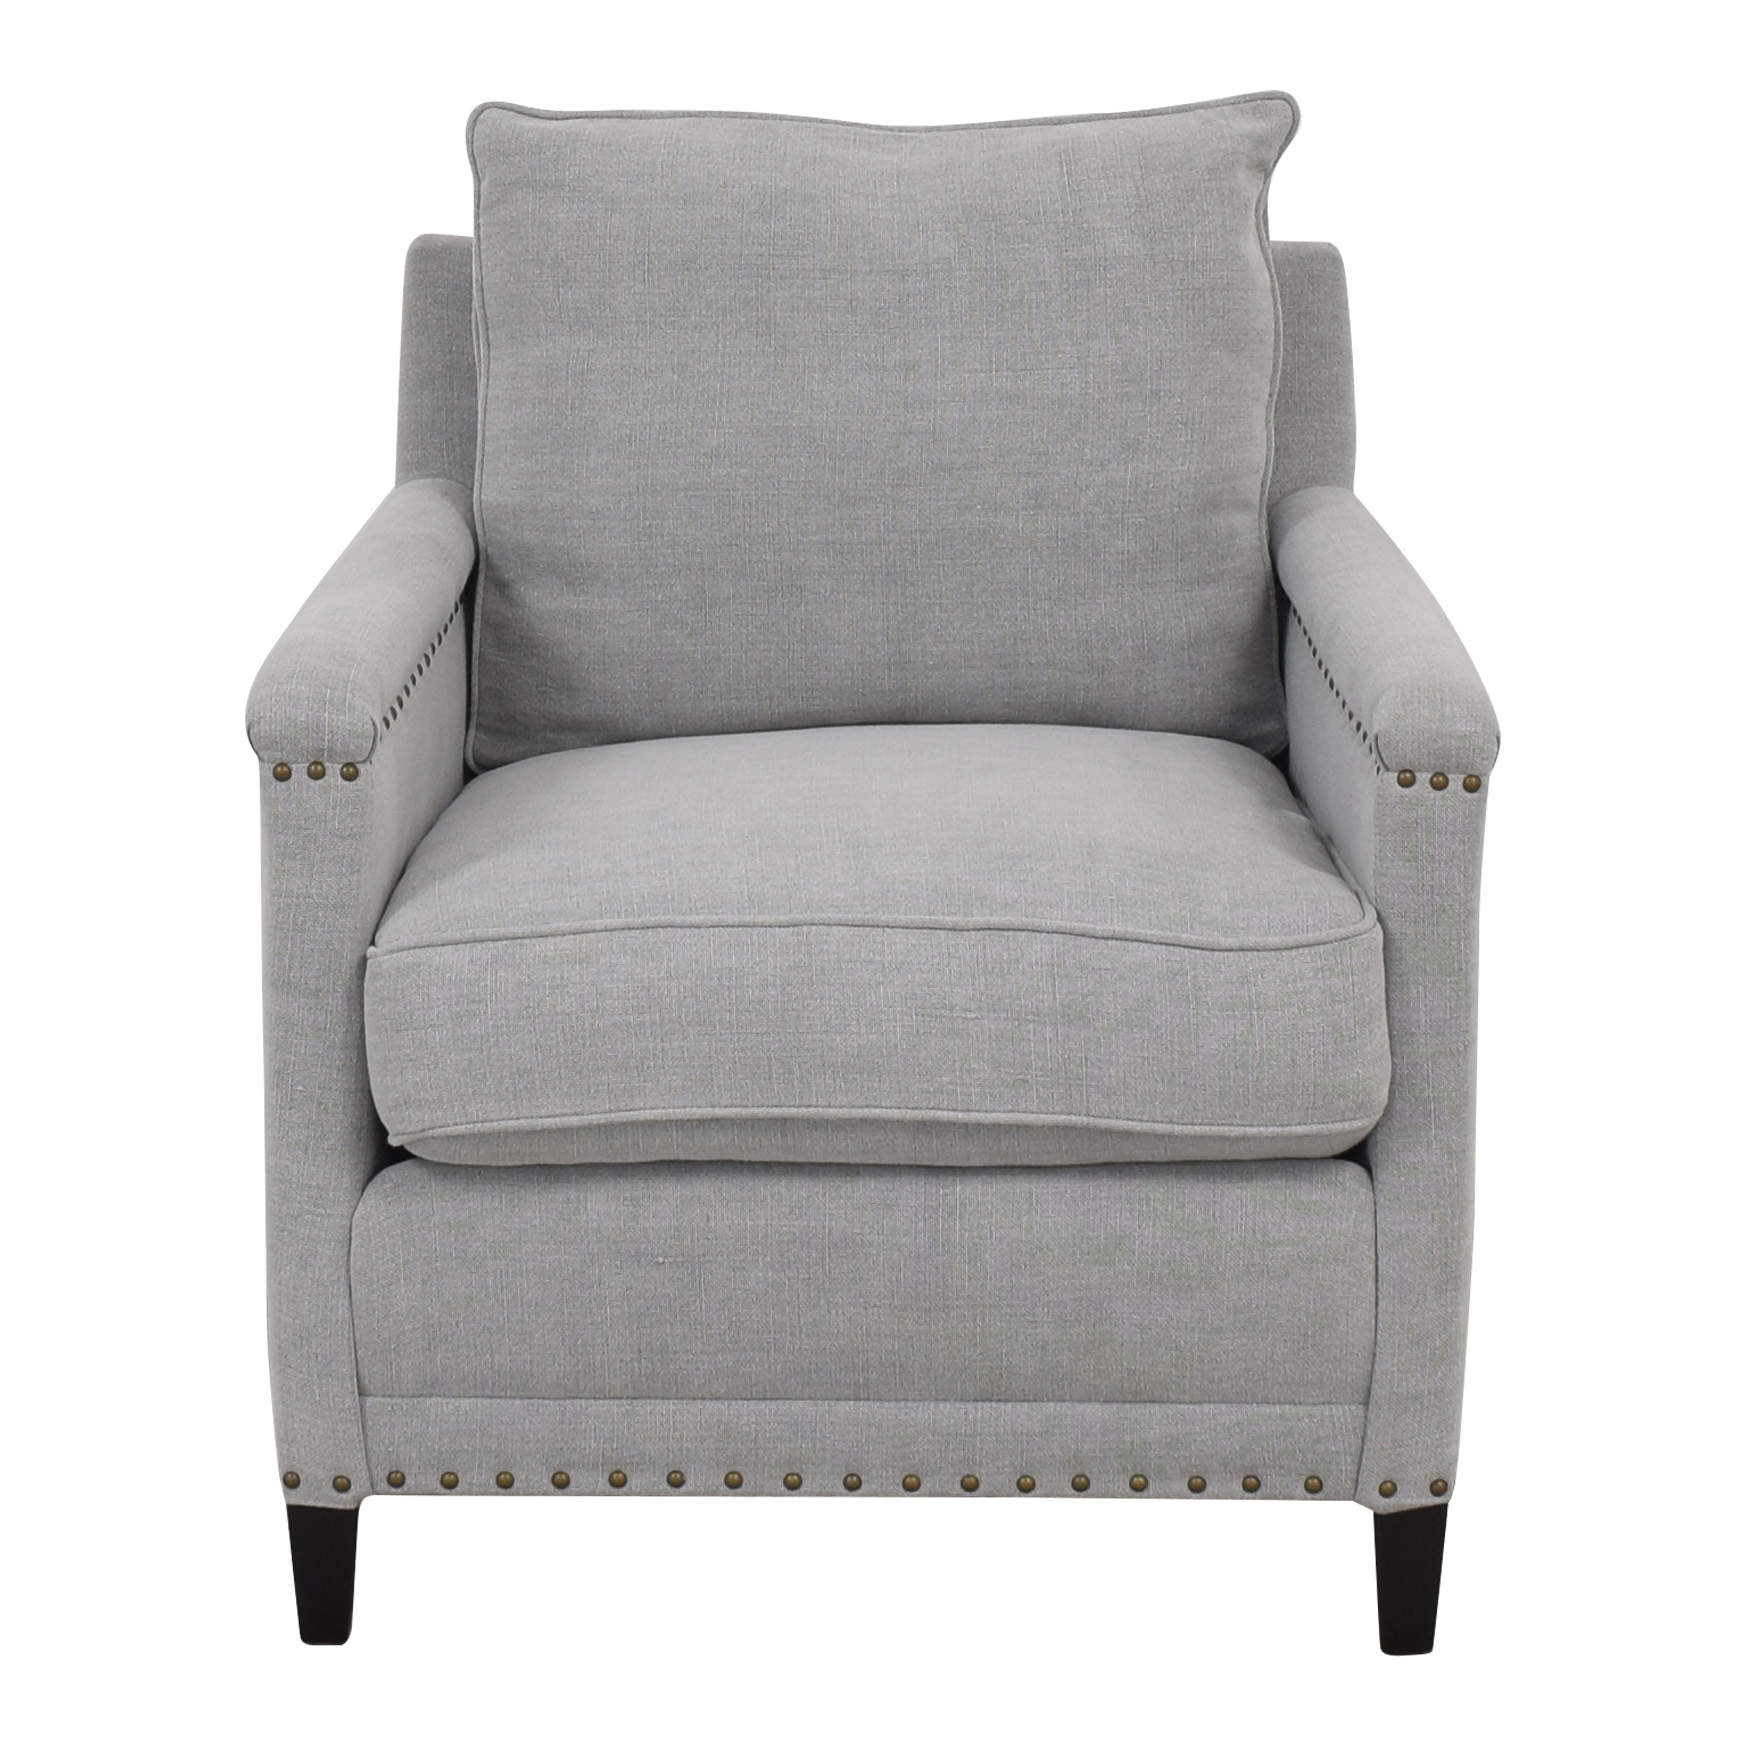 Williams Sonoma Williams Sonoma Addison Chair on sale